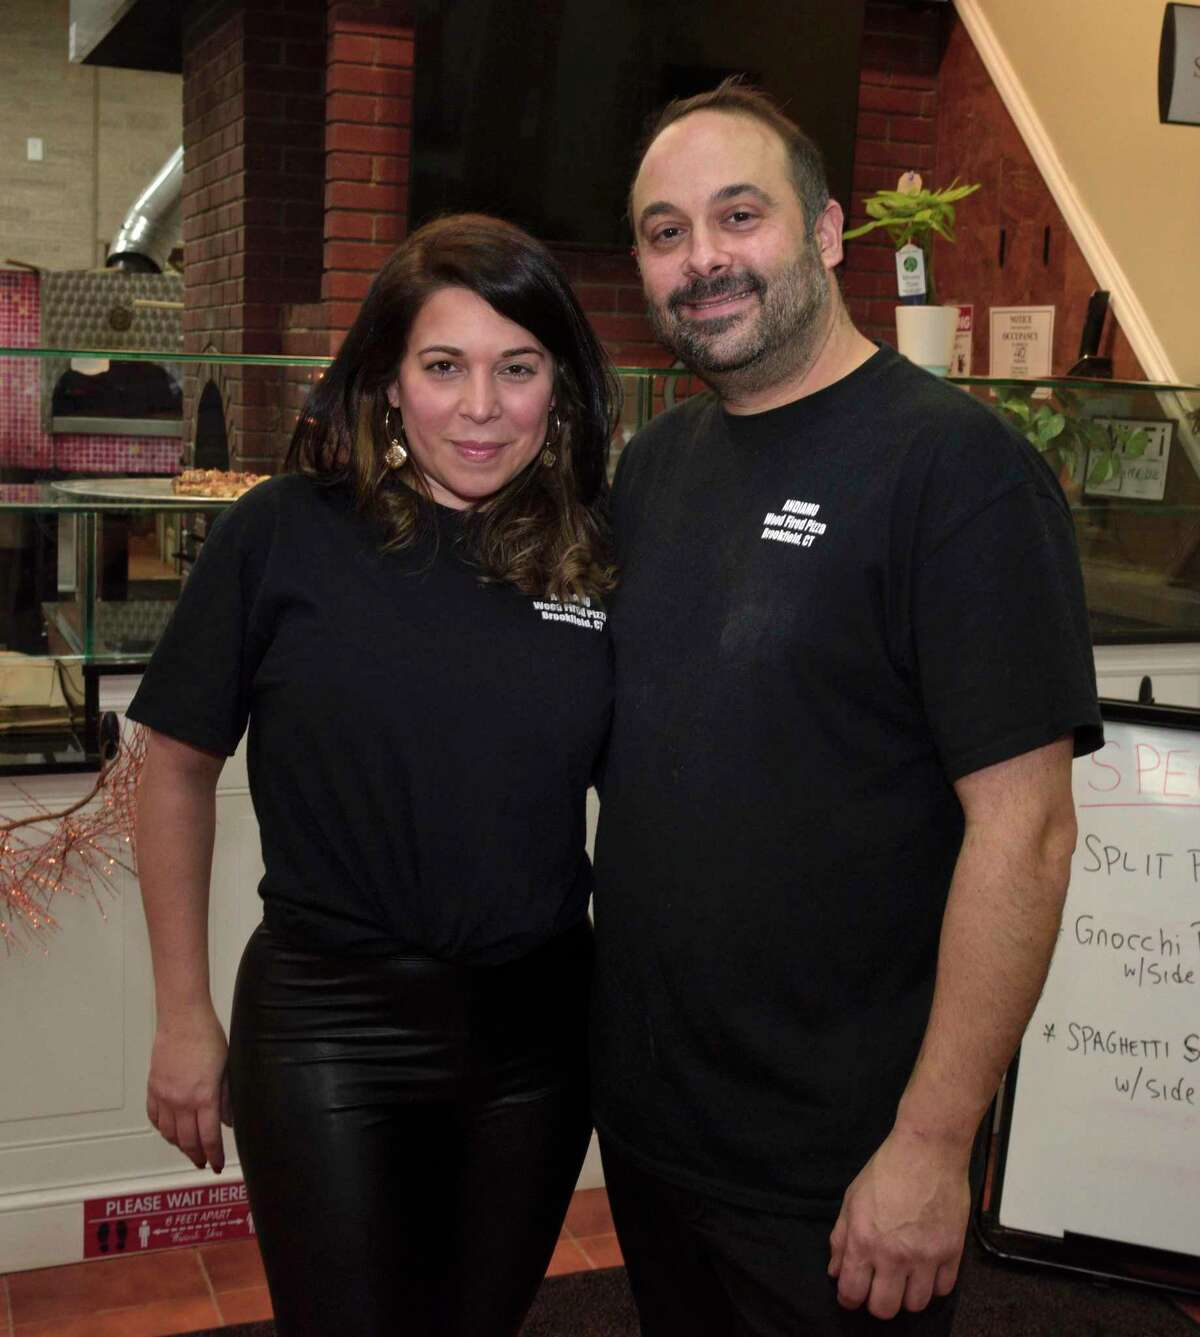 Ana and Franco DeRose have opened Andiamo Wood-Fired Pizza in Candlewood Lake Plaza in Brookfield, Conn. Friday January 15, 2021.